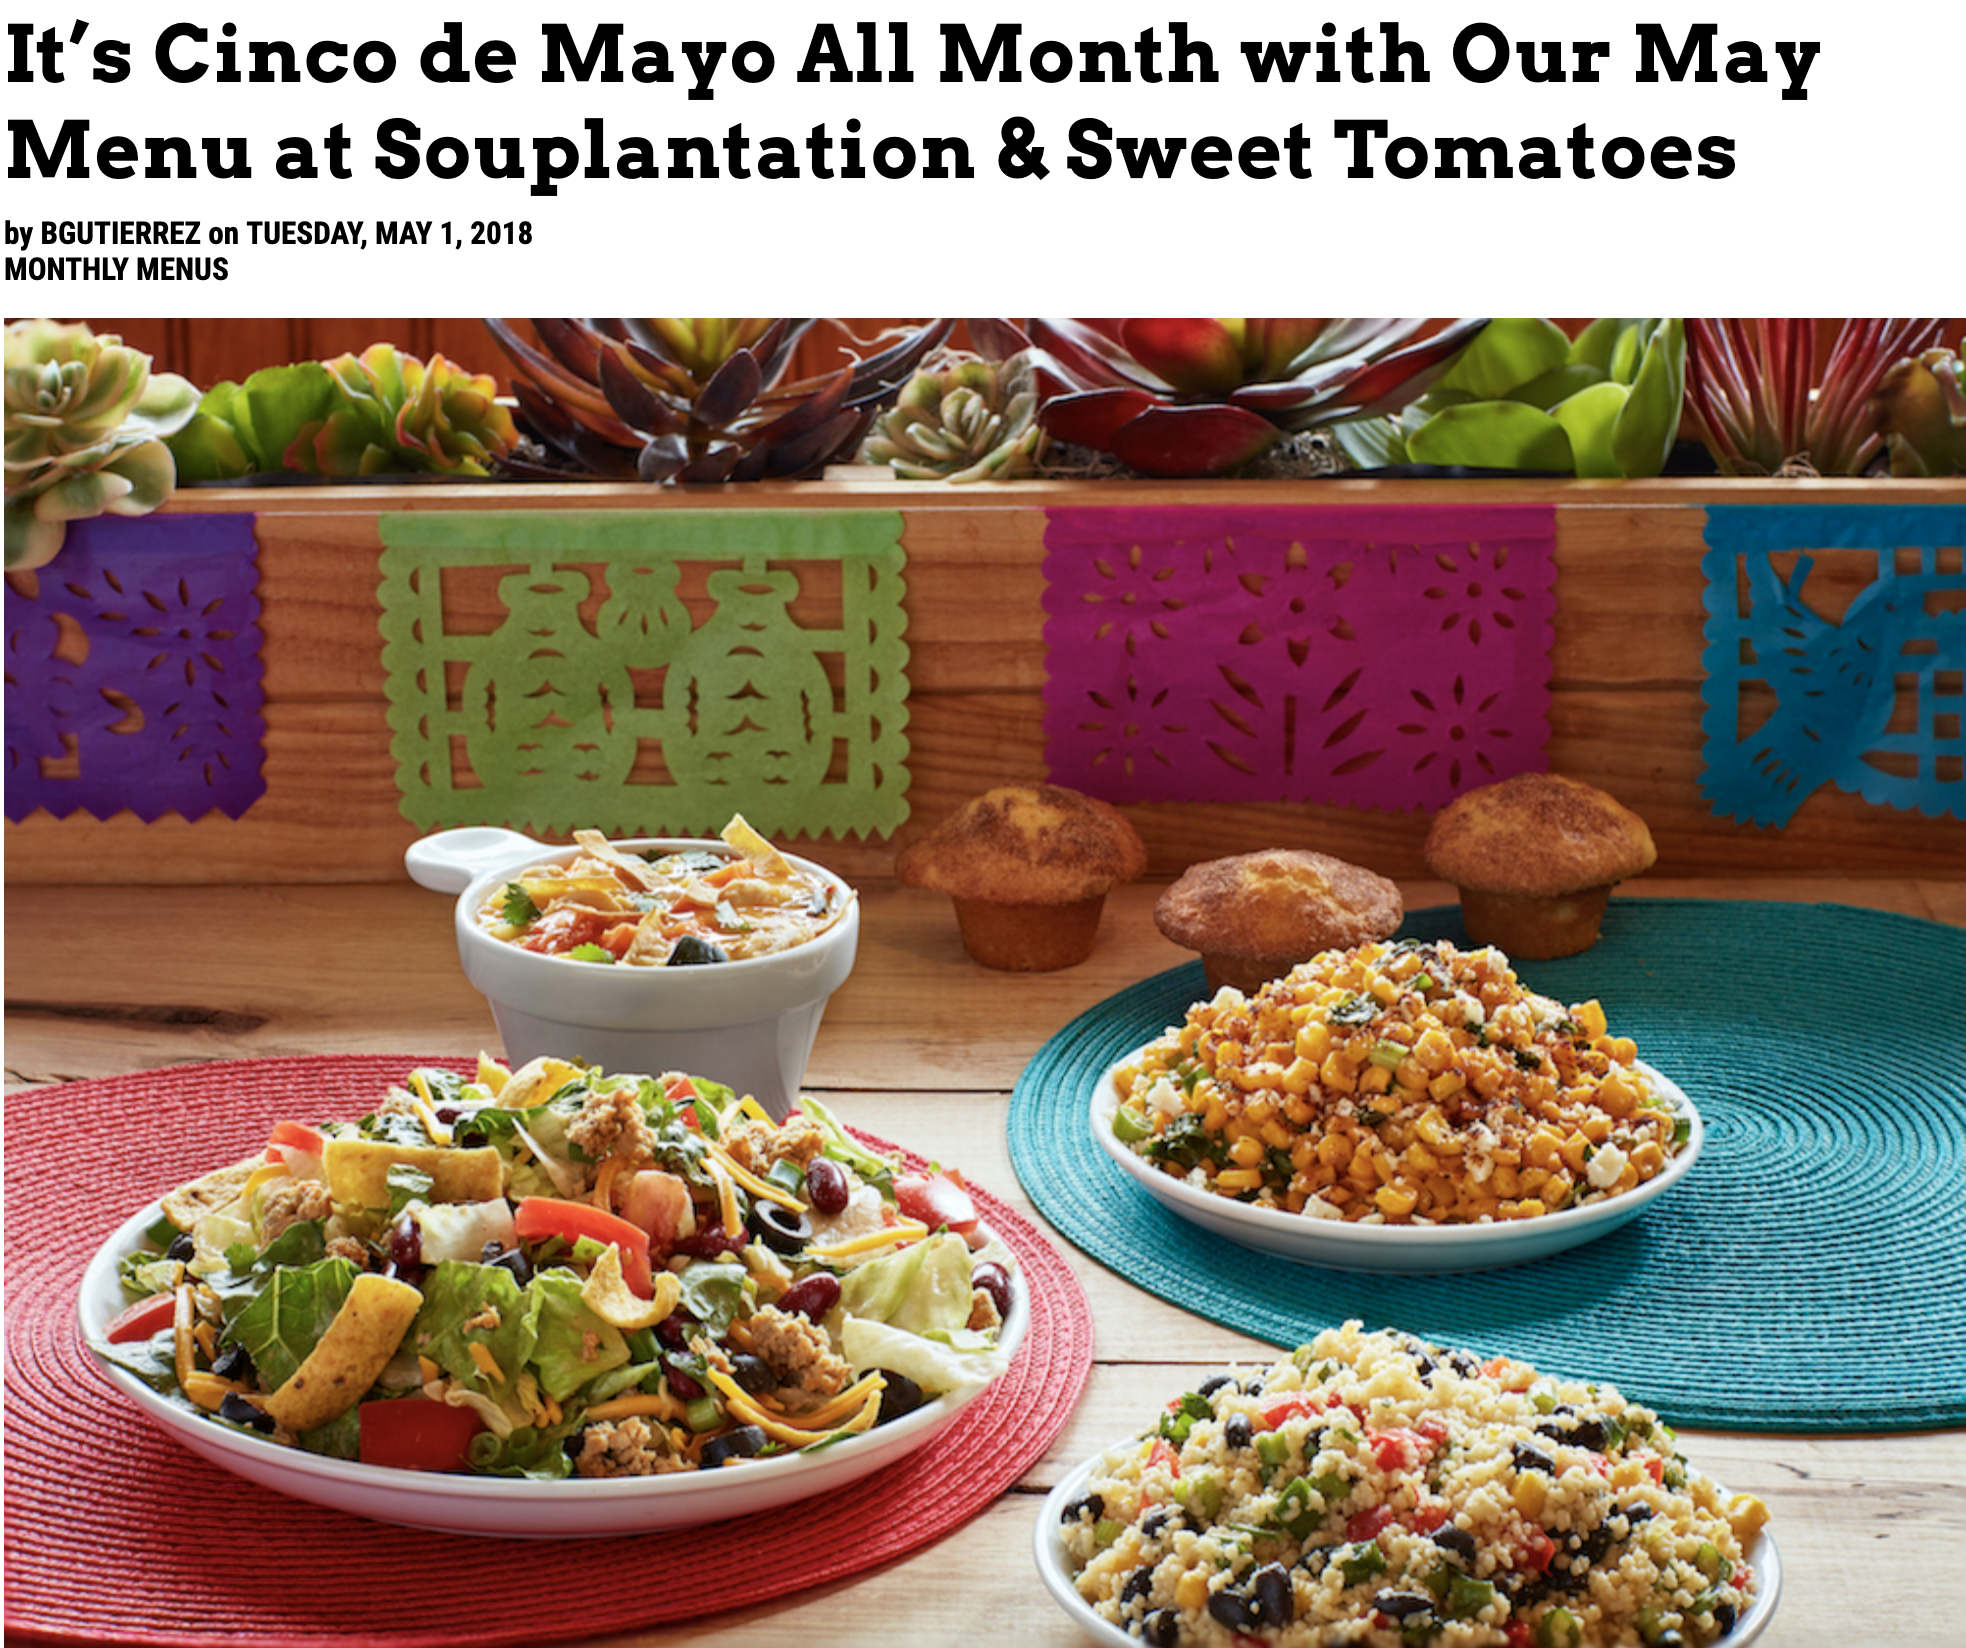 As part of my work on Souplantation and Sweet Tomatoes restaurants' SEO campaign with the goal to bolster the brand's online visibility as a healthy option for family dining on a local and national level, I wrote blog content that spoke to healthy eating how-tos and monthly menu spotlights. In this particular post, I highlight the restaurants' Cinco de Mayo themed menu and am particularly proud of my pithy descriptions of each new item.